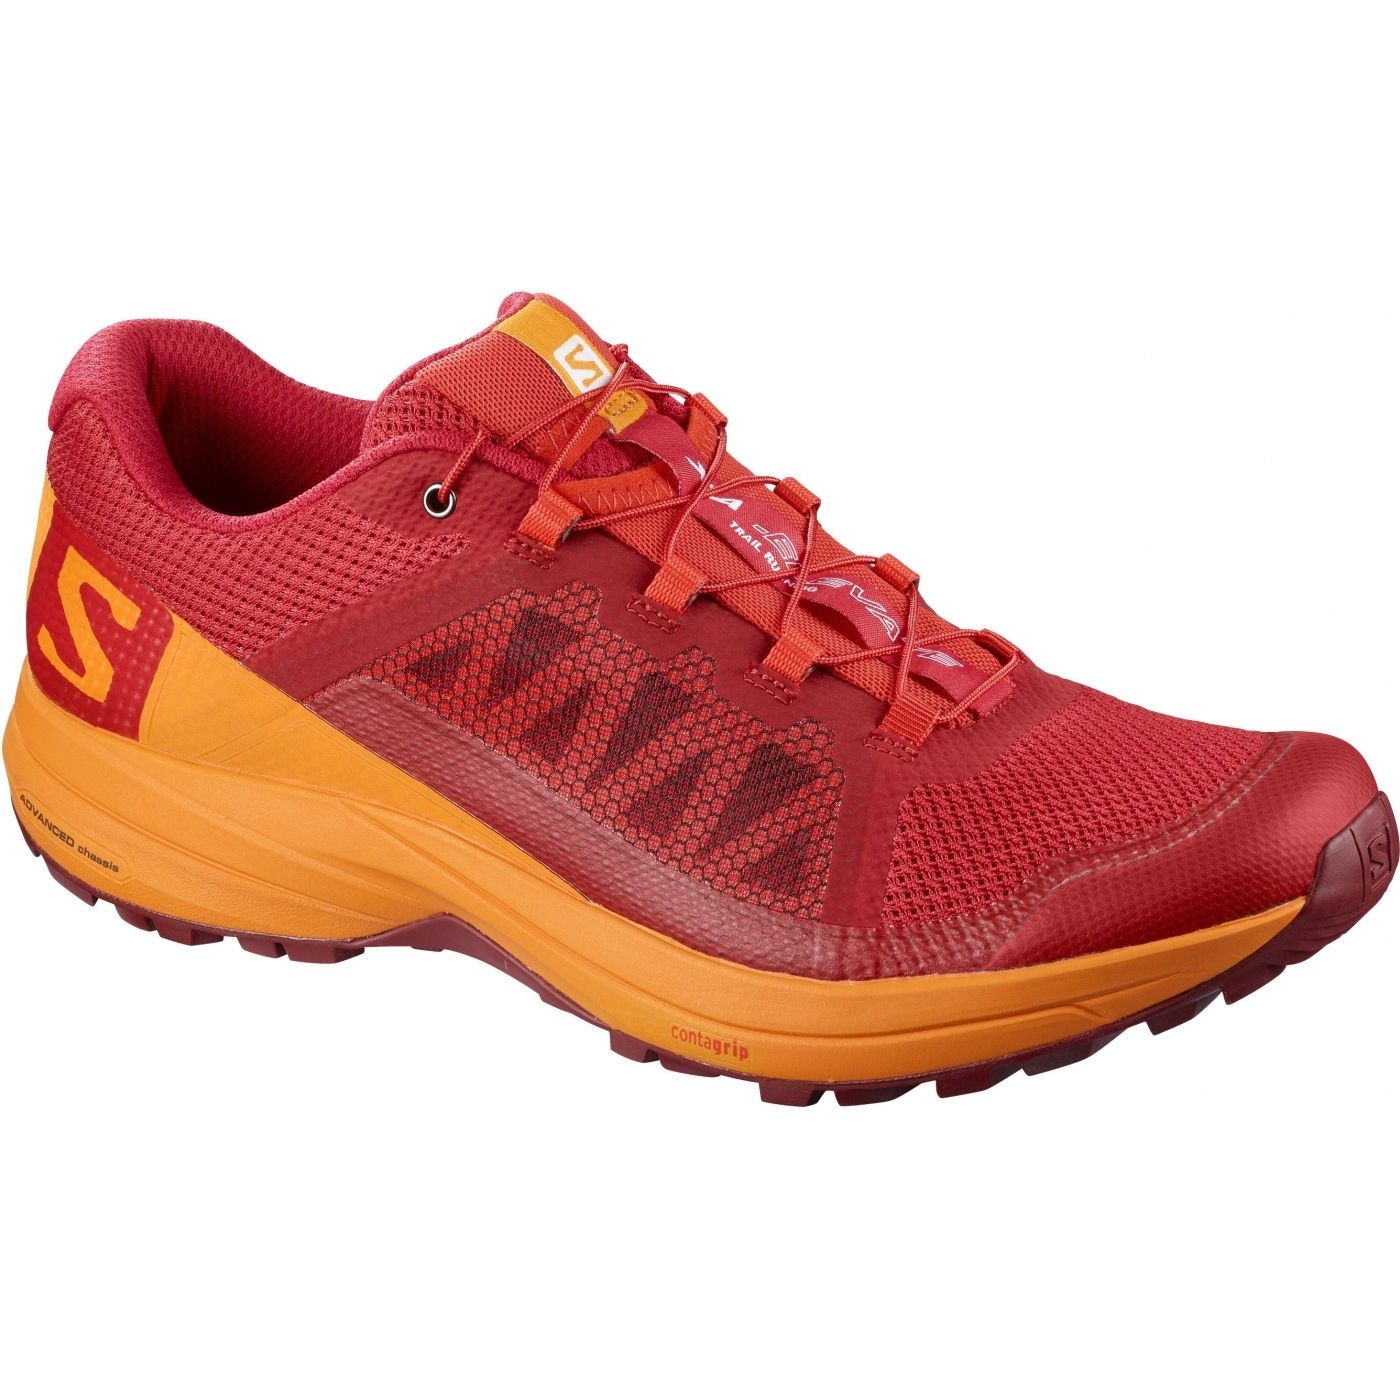 Chaussures Elevate Cherry Barbados Salomon Xa rSn8rR